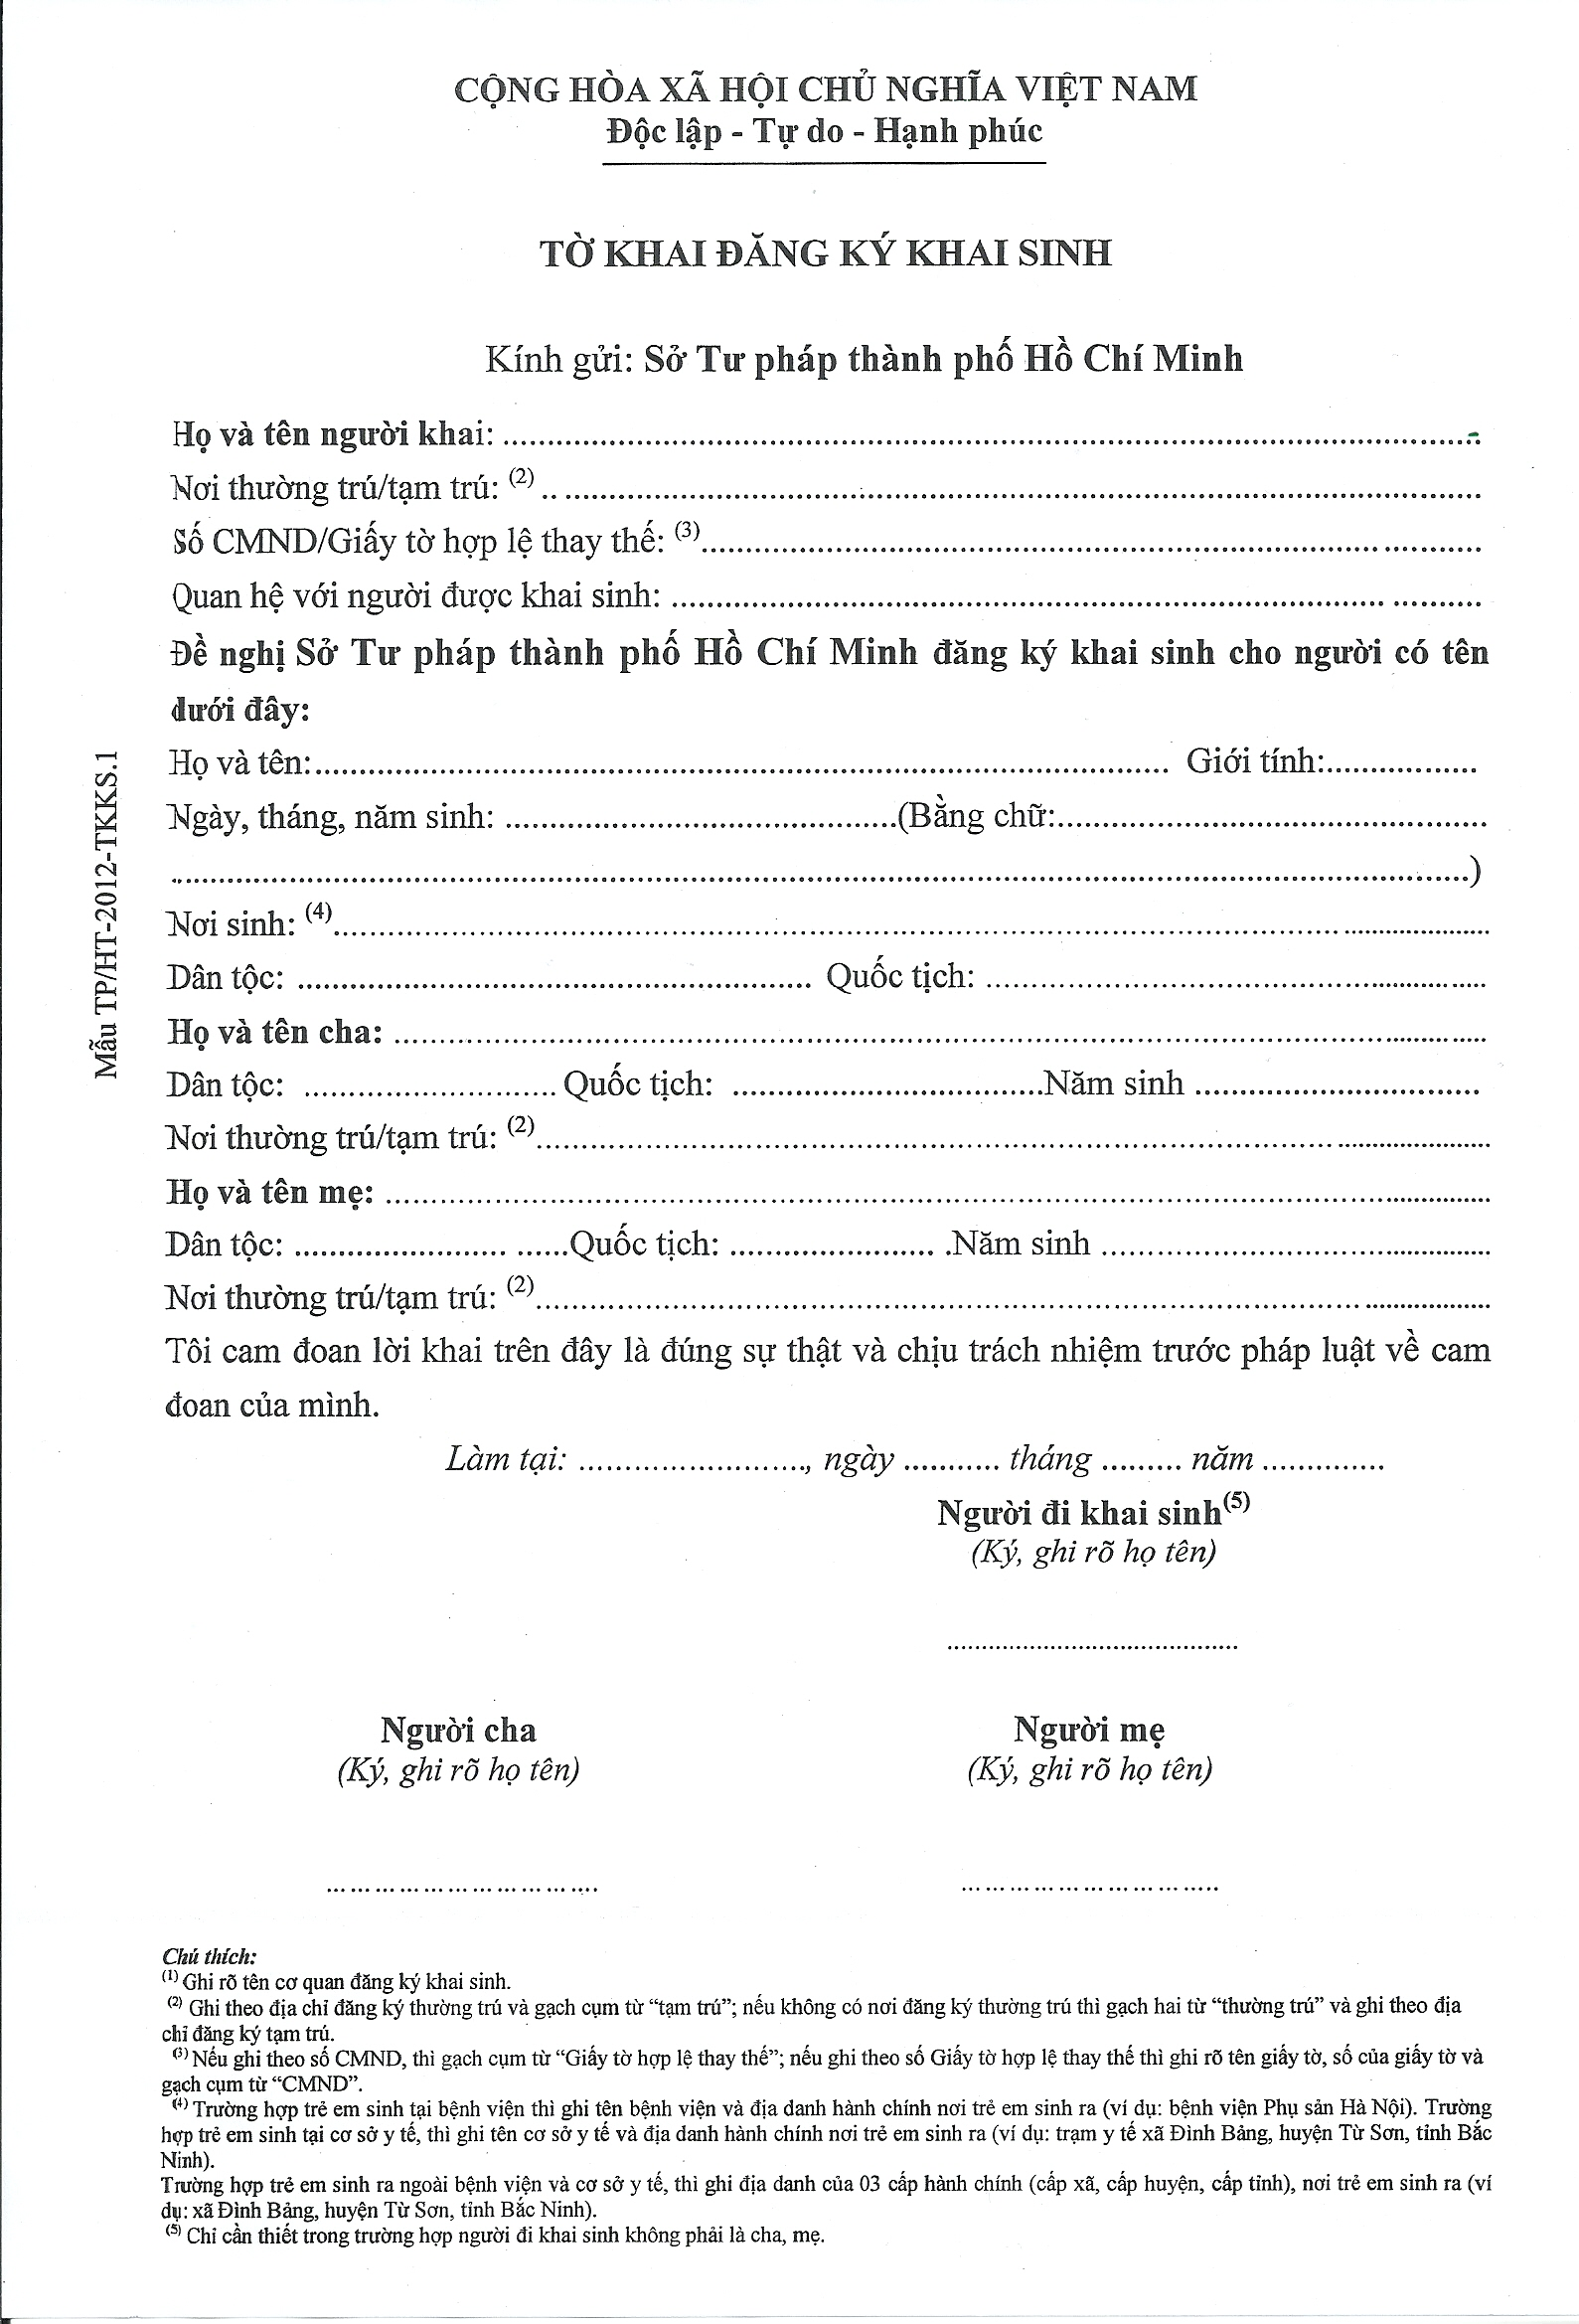 How to get a birth certificate in vietnam a summary hello saigon child birth registration form from the moj aiddatafo Images